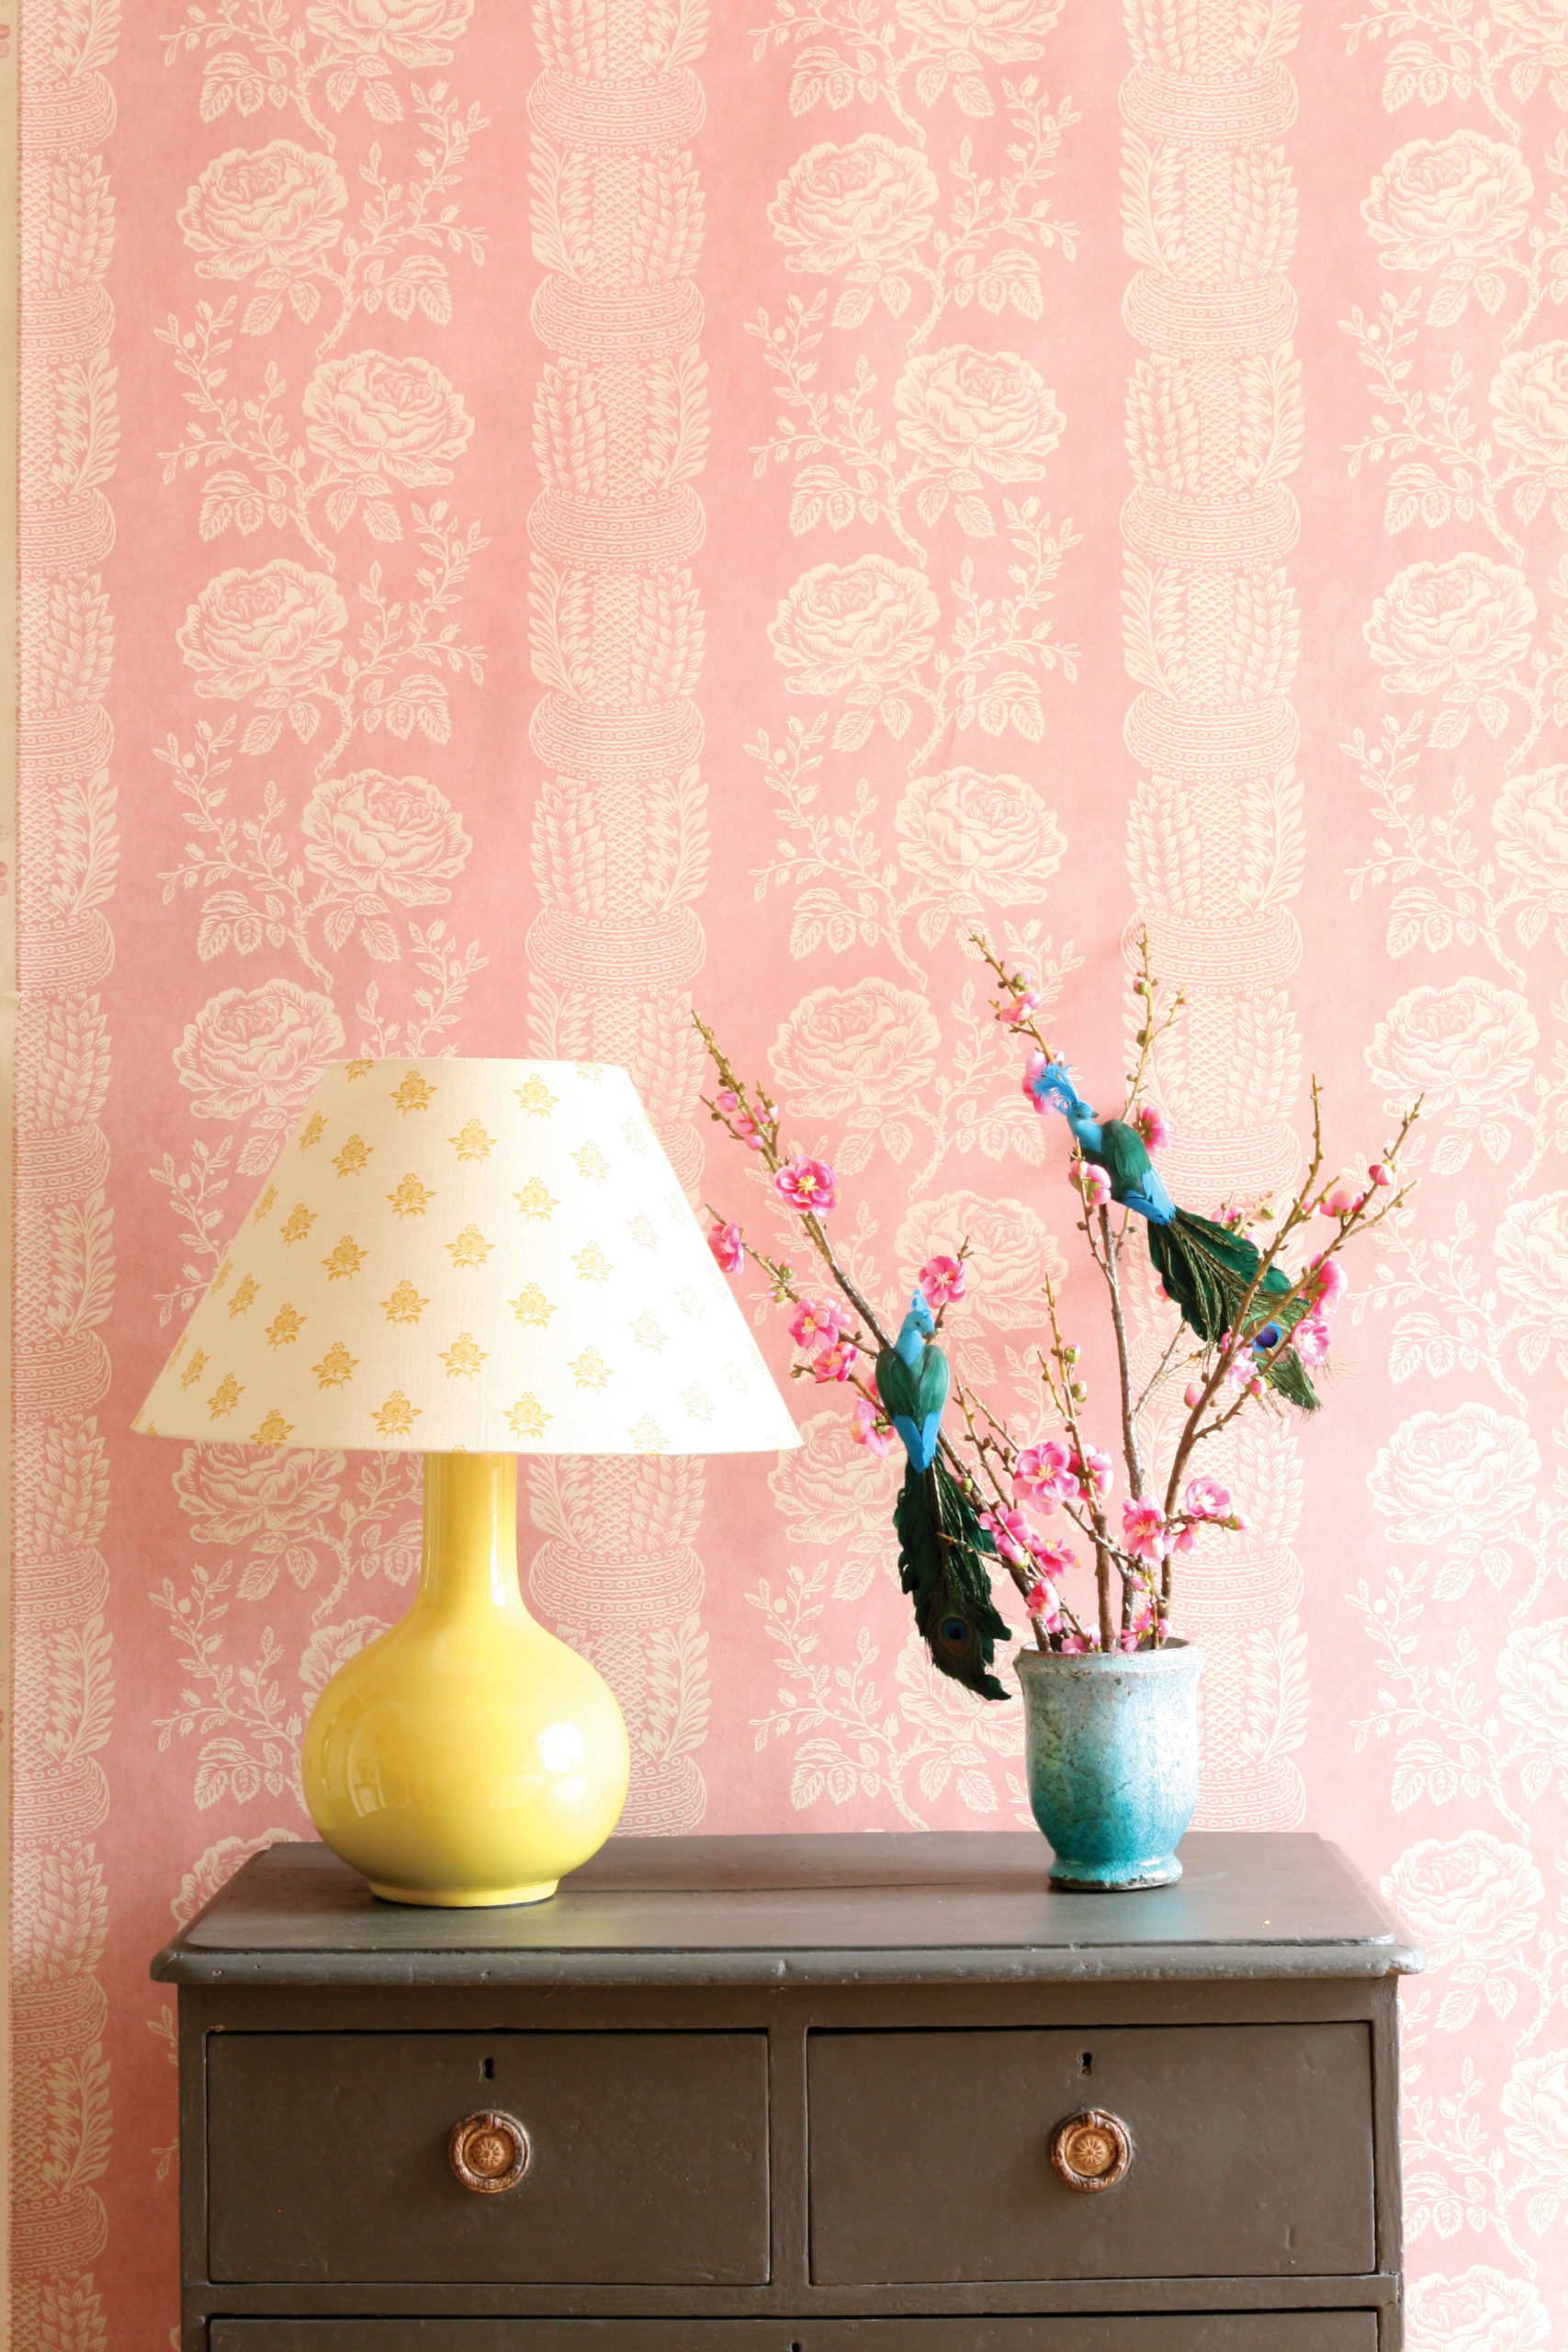 Delilah Wallpaper & Neisha Saffron Shade